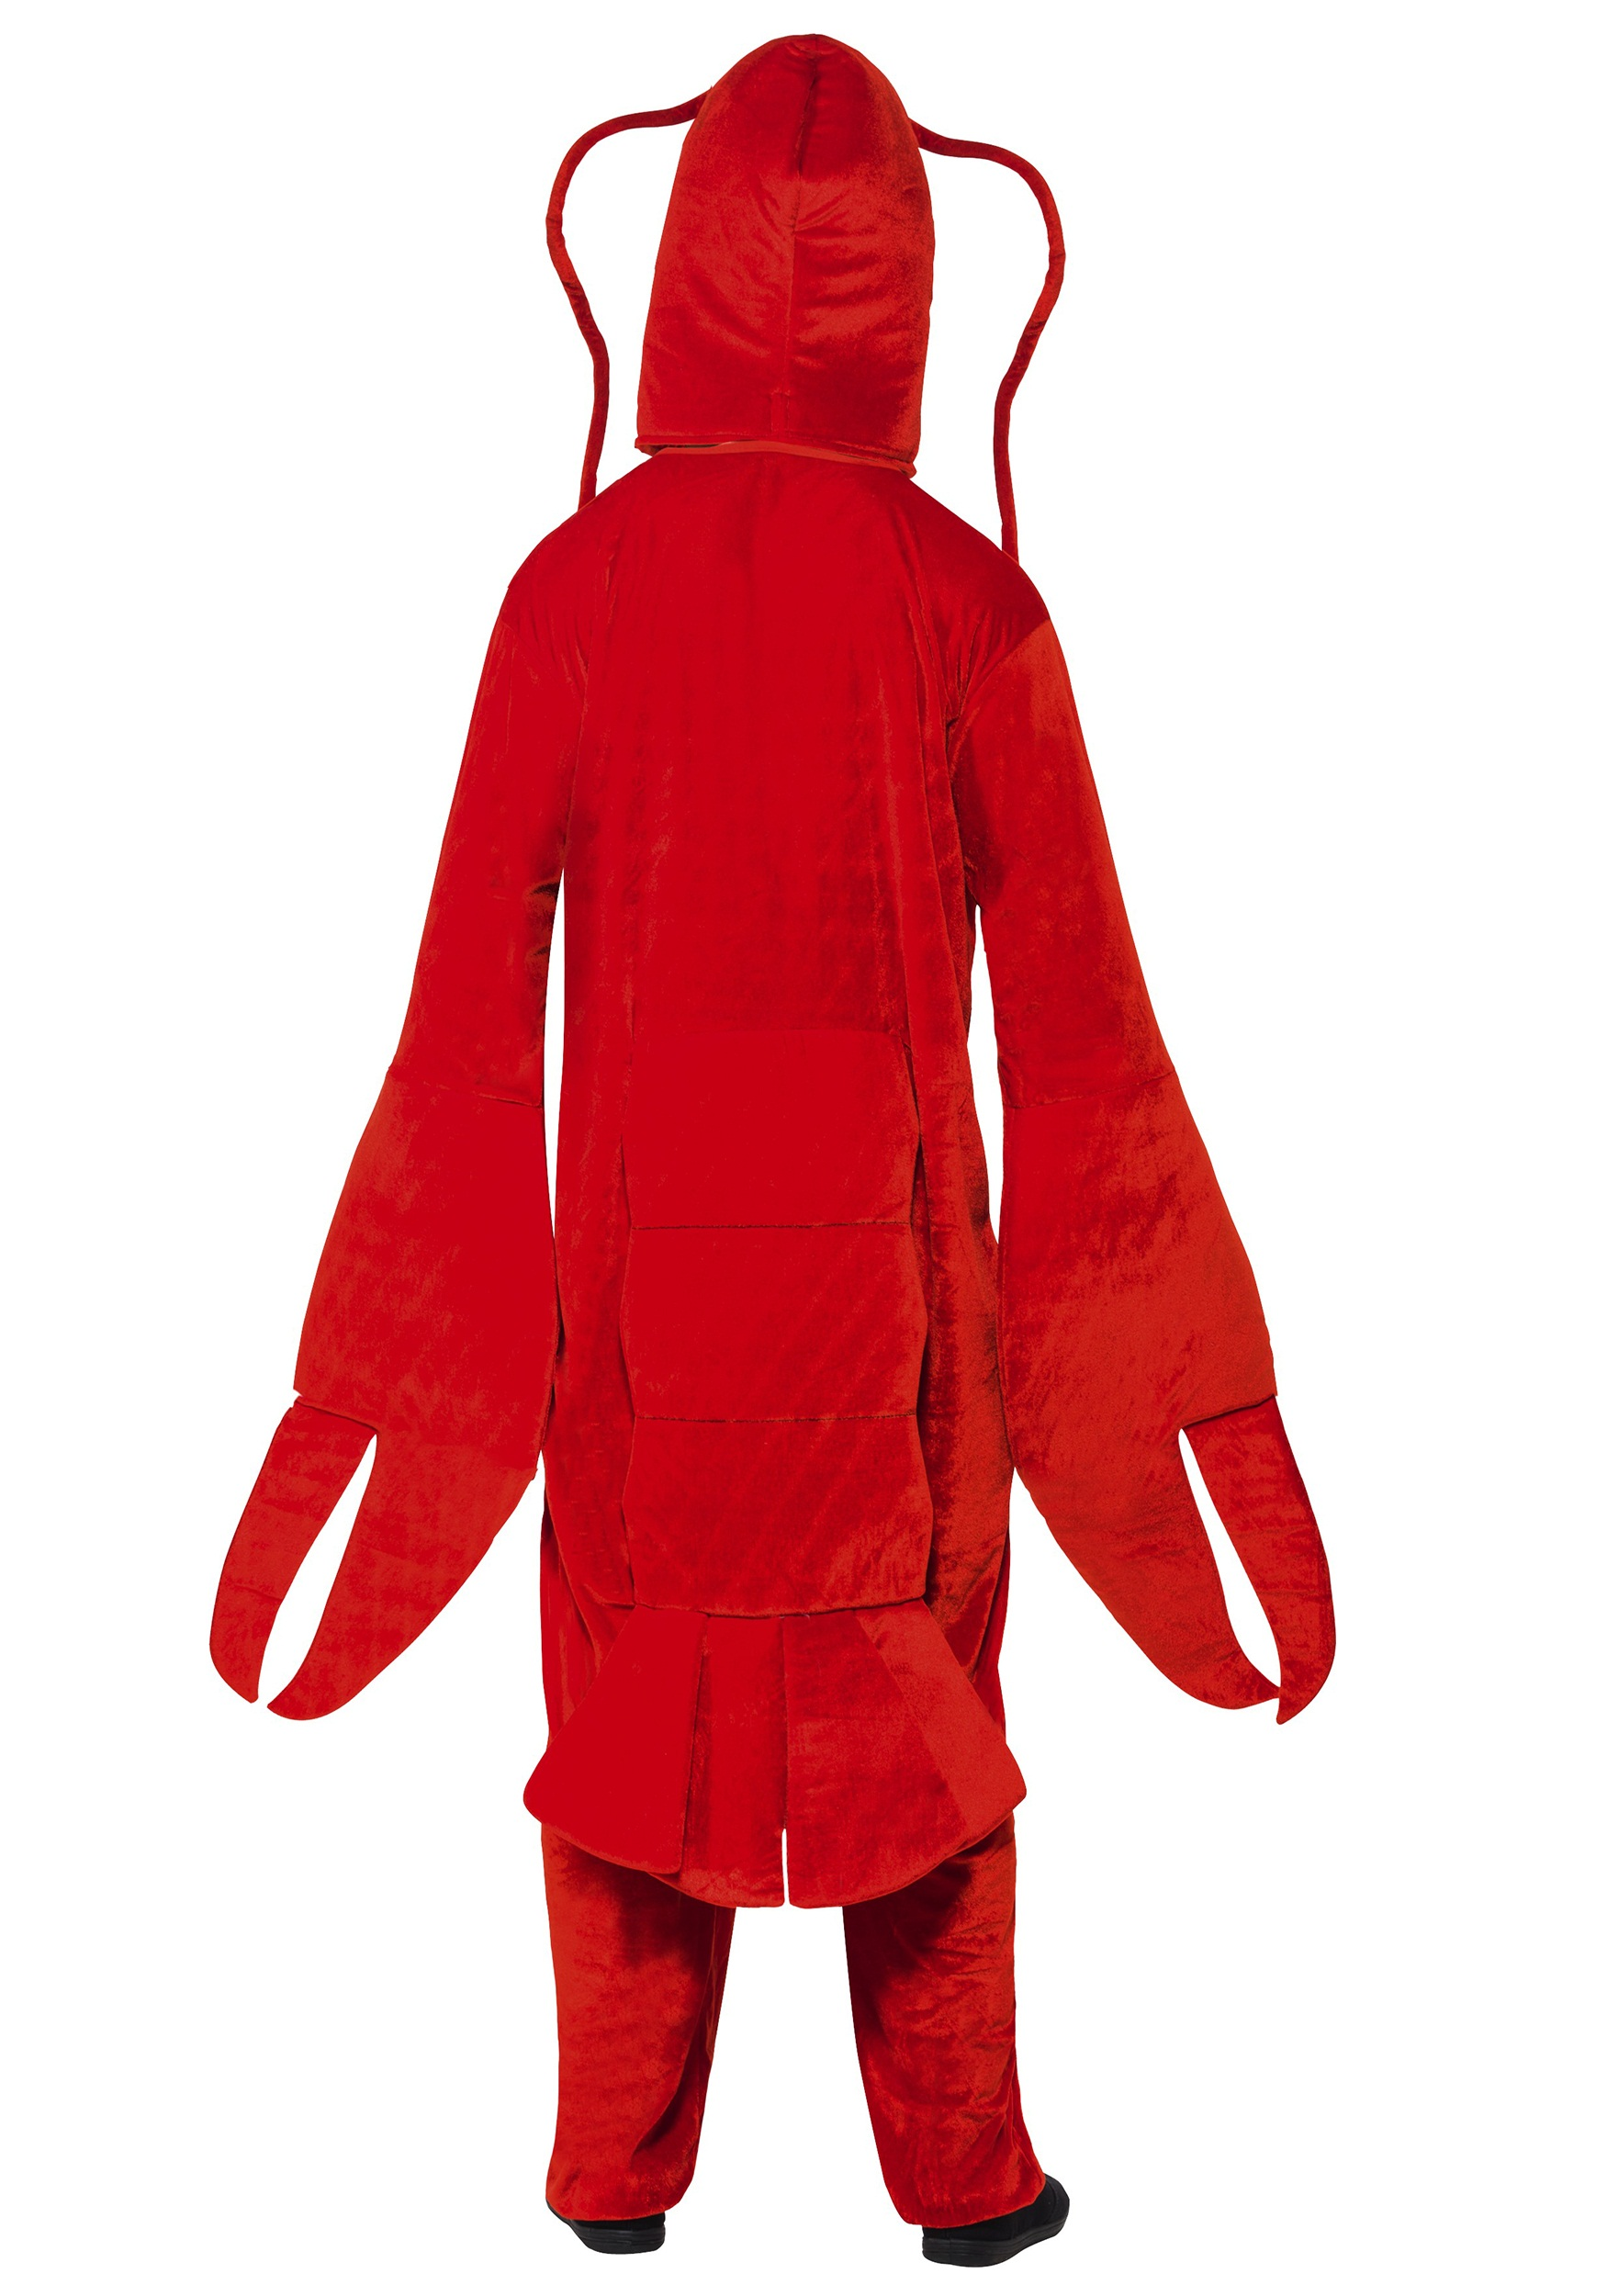 Adult red lobster costume adult red lobster costume adult red lobster costume back solutioingenieria